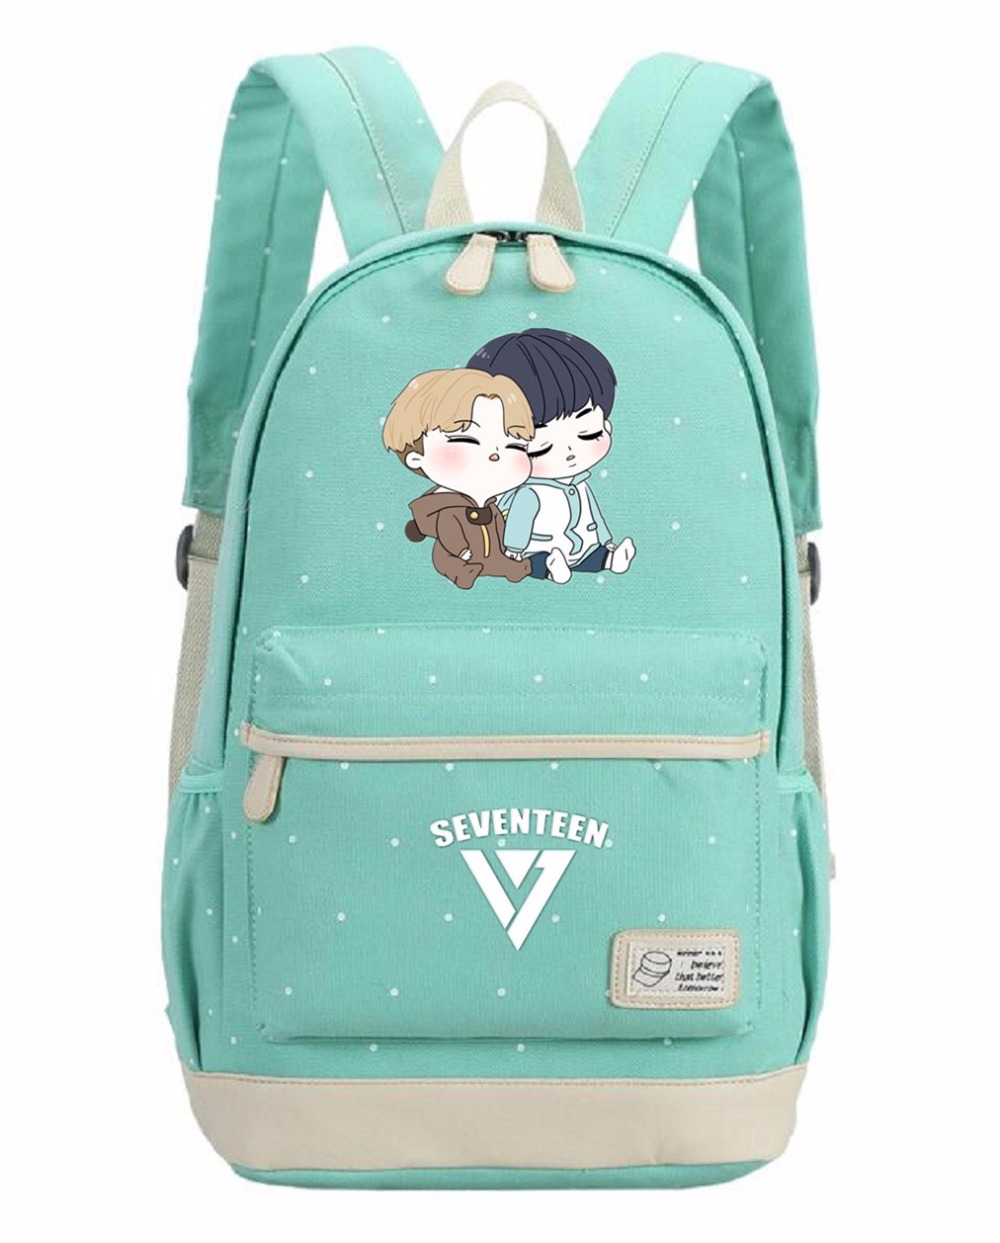 Komikoy Seventeen 17 Canvas Laptop Bag Flower Rucksacks Backpack Student School Travel Bags Daypack Removing Obstruction Luggage & Bags